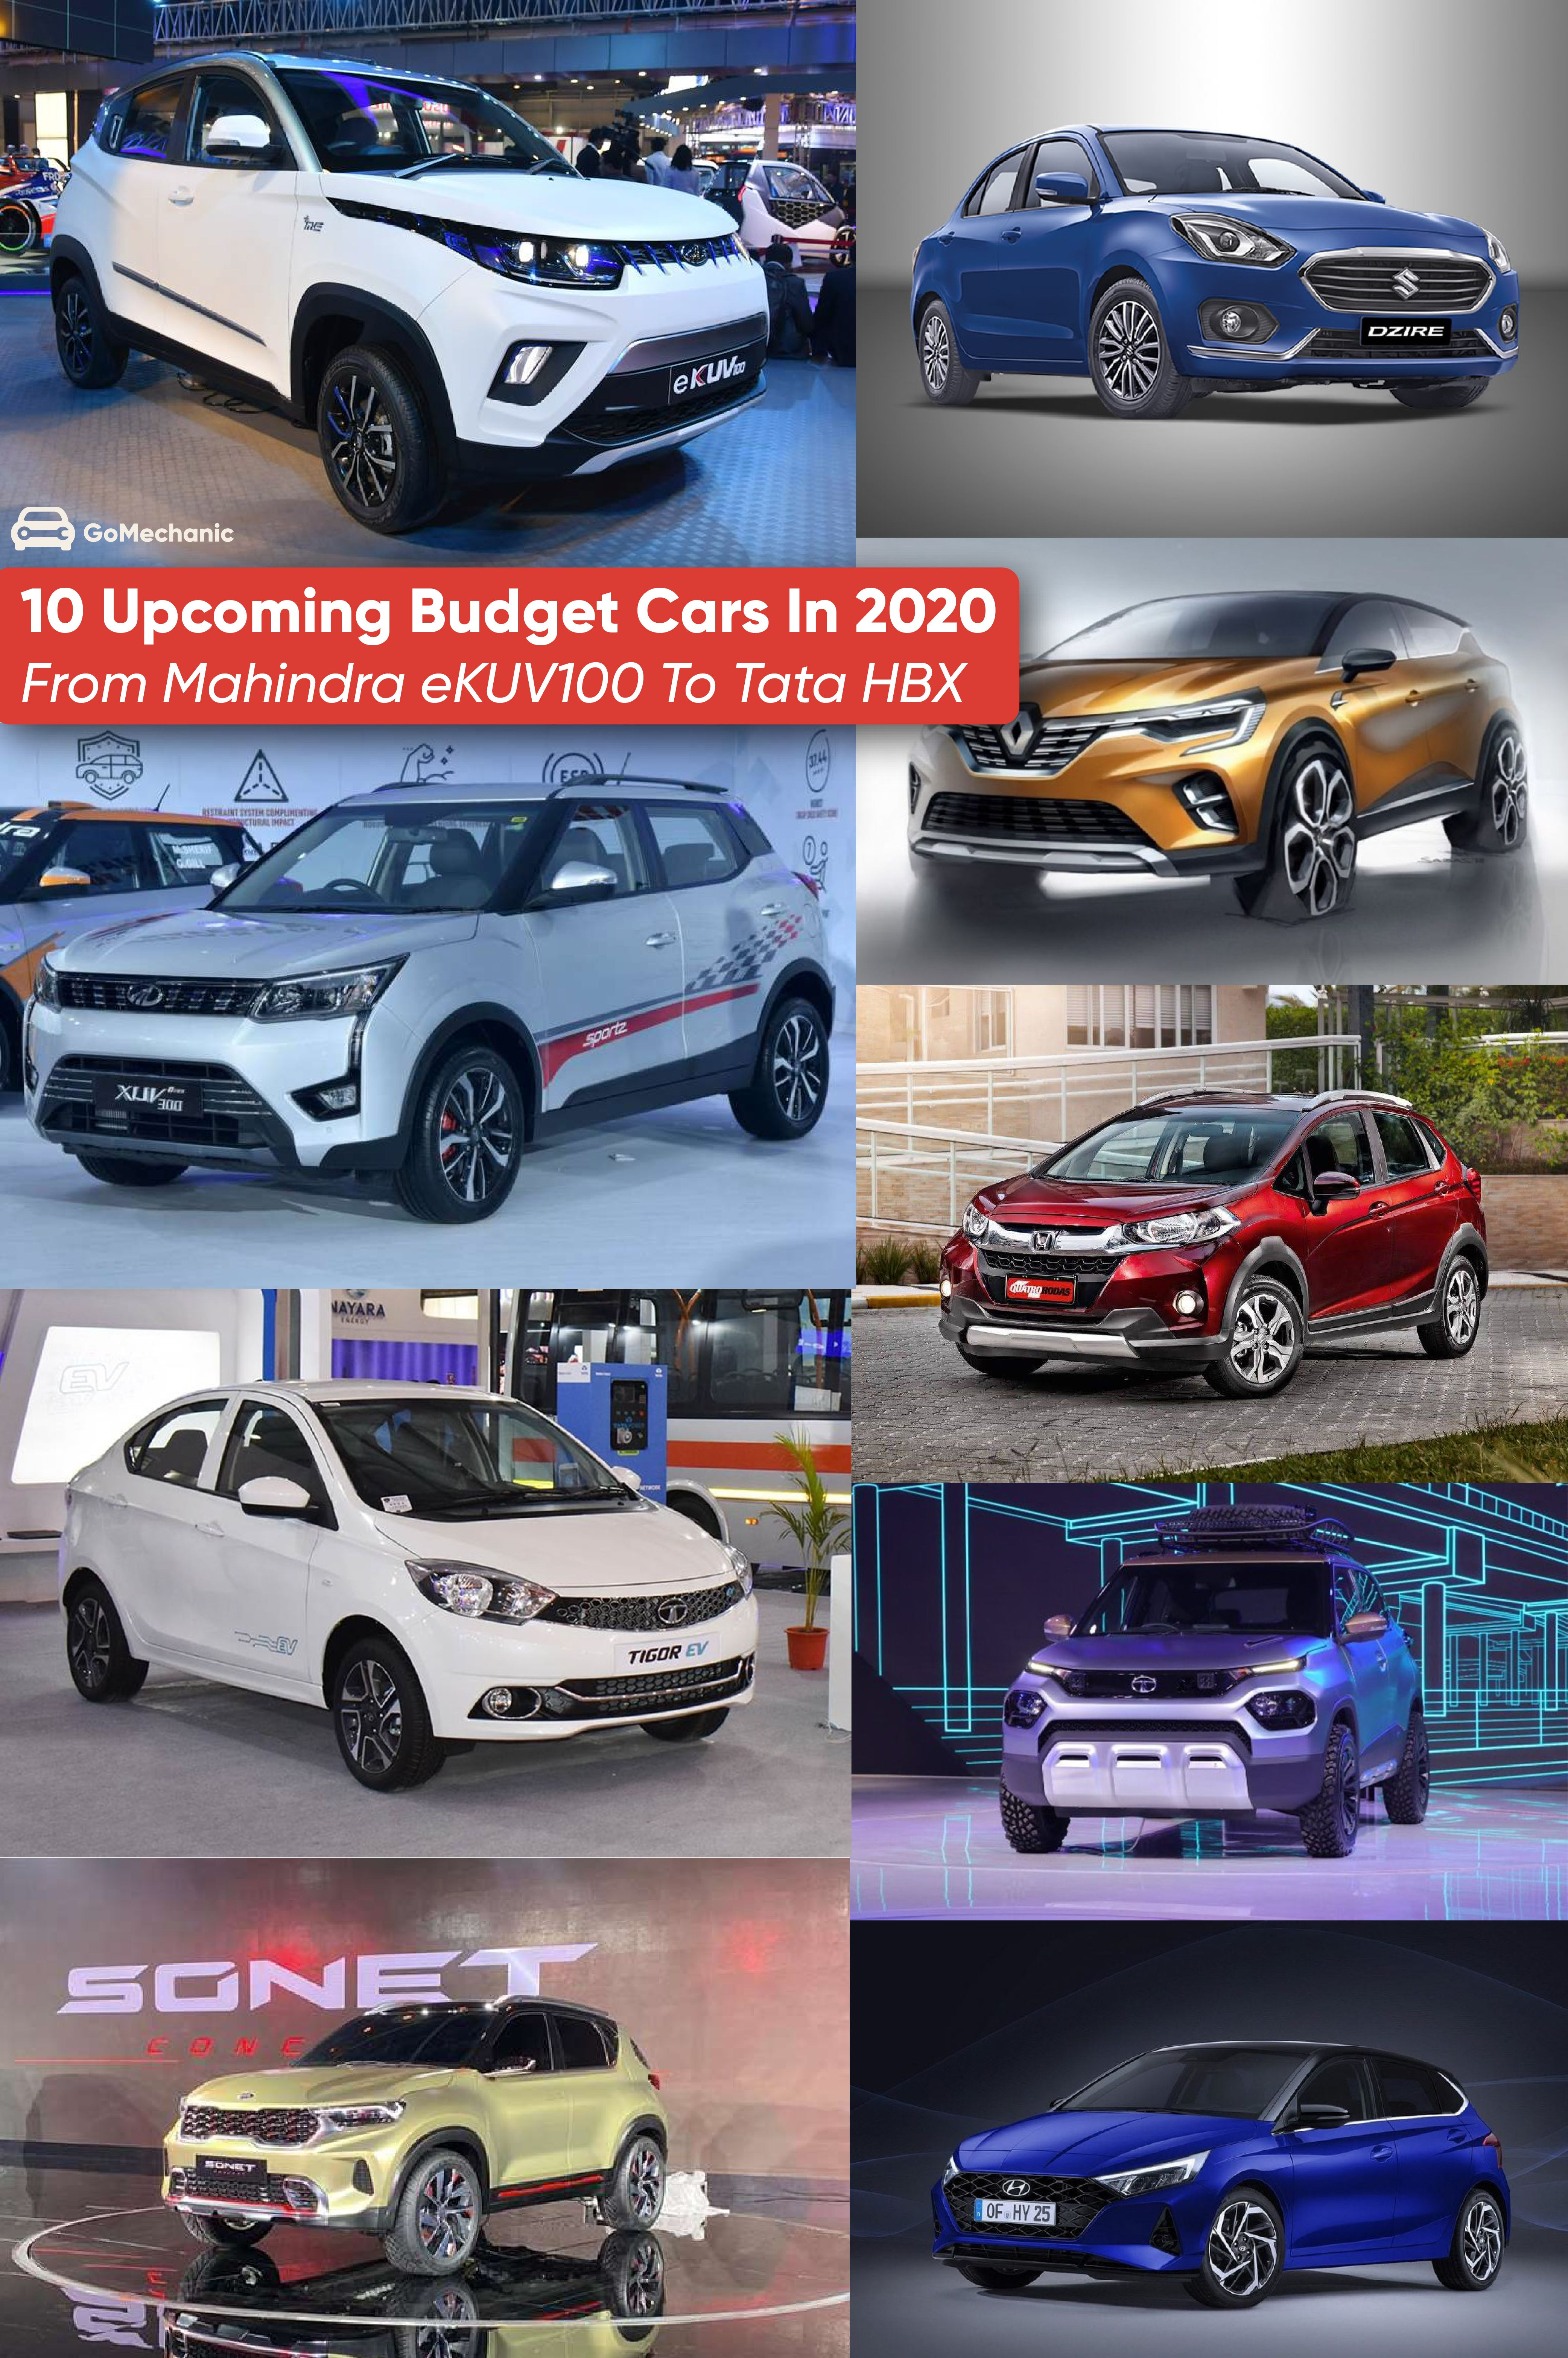 10 Upcoming Budget Cars In 2020 From Mahindra Ekuv100 To Tata Hbx In 2020 Car Budget Car Ins Budgeting